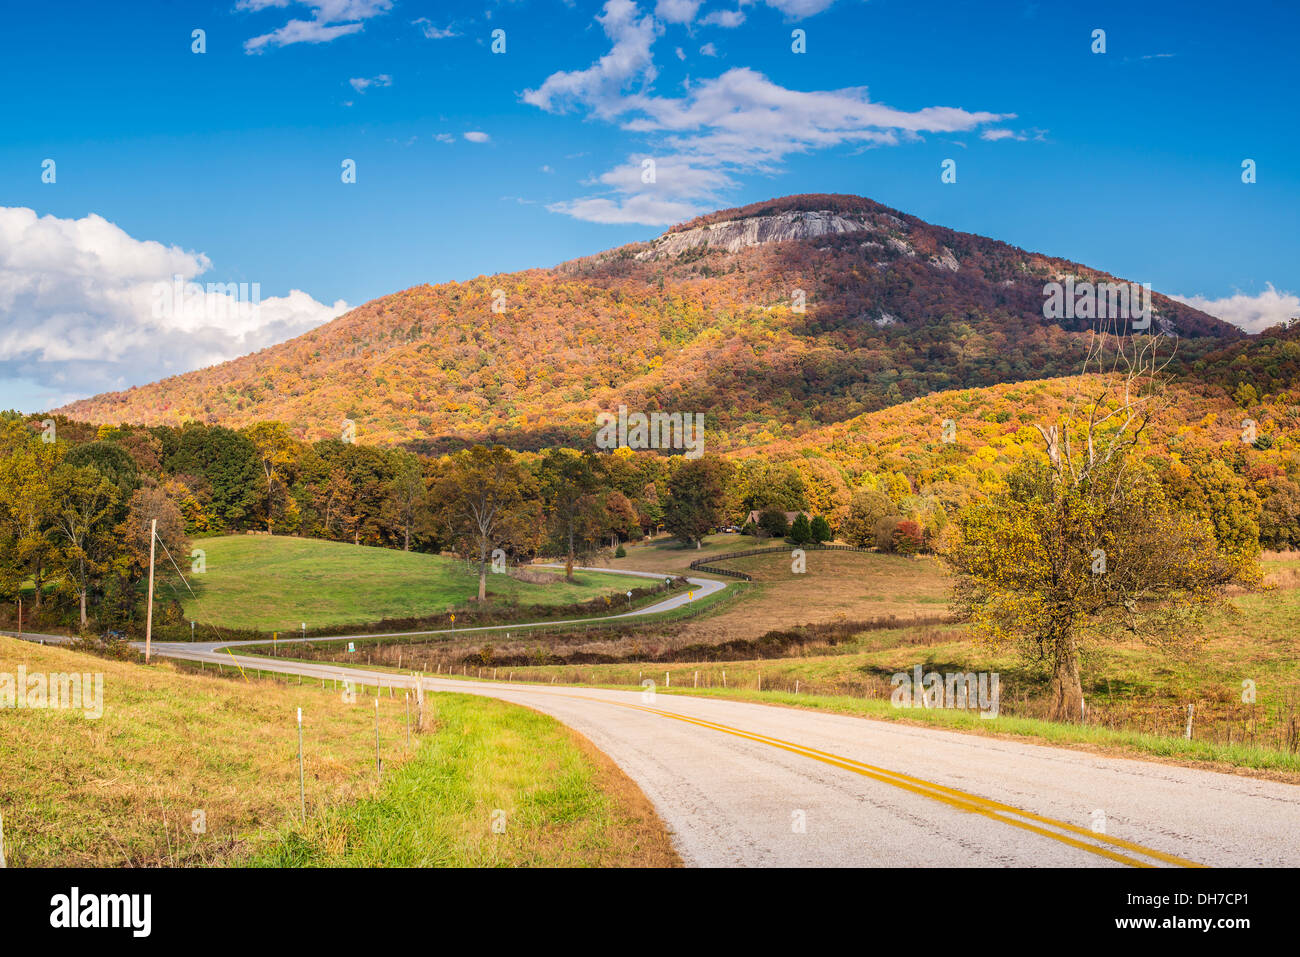 Mt. Yonah in north Georgia, USA. - Stock Image